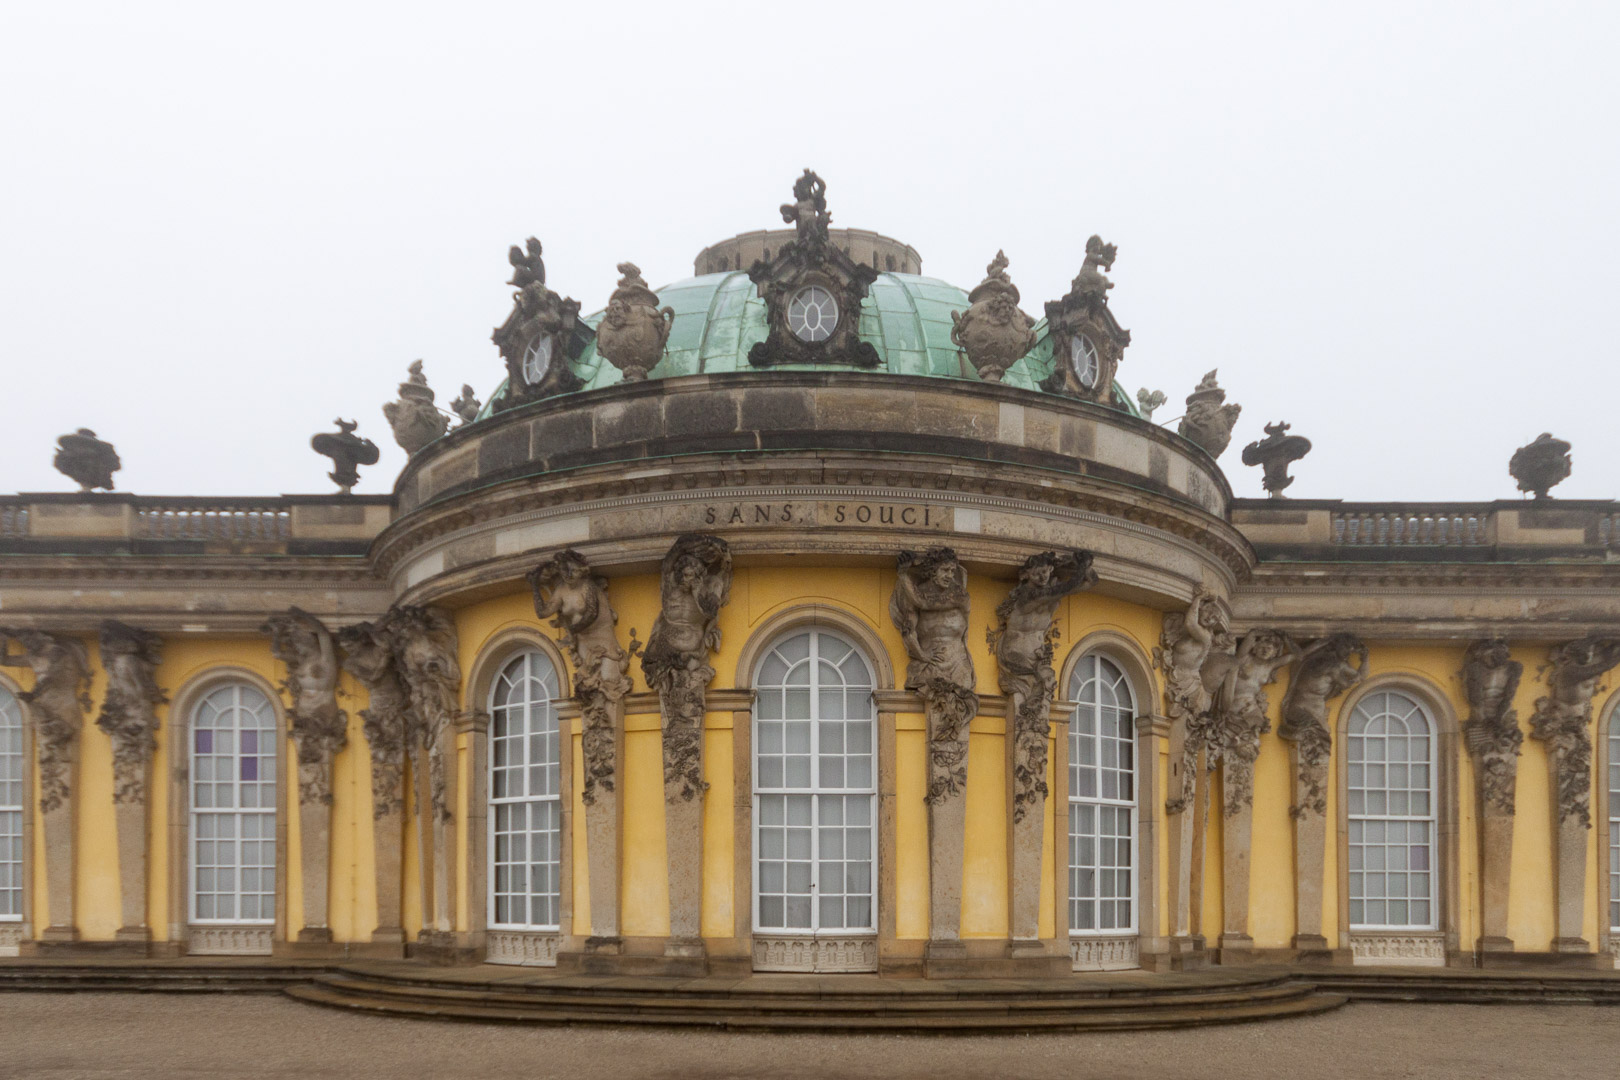 Sanssouci Palace, Potsdam – Germany